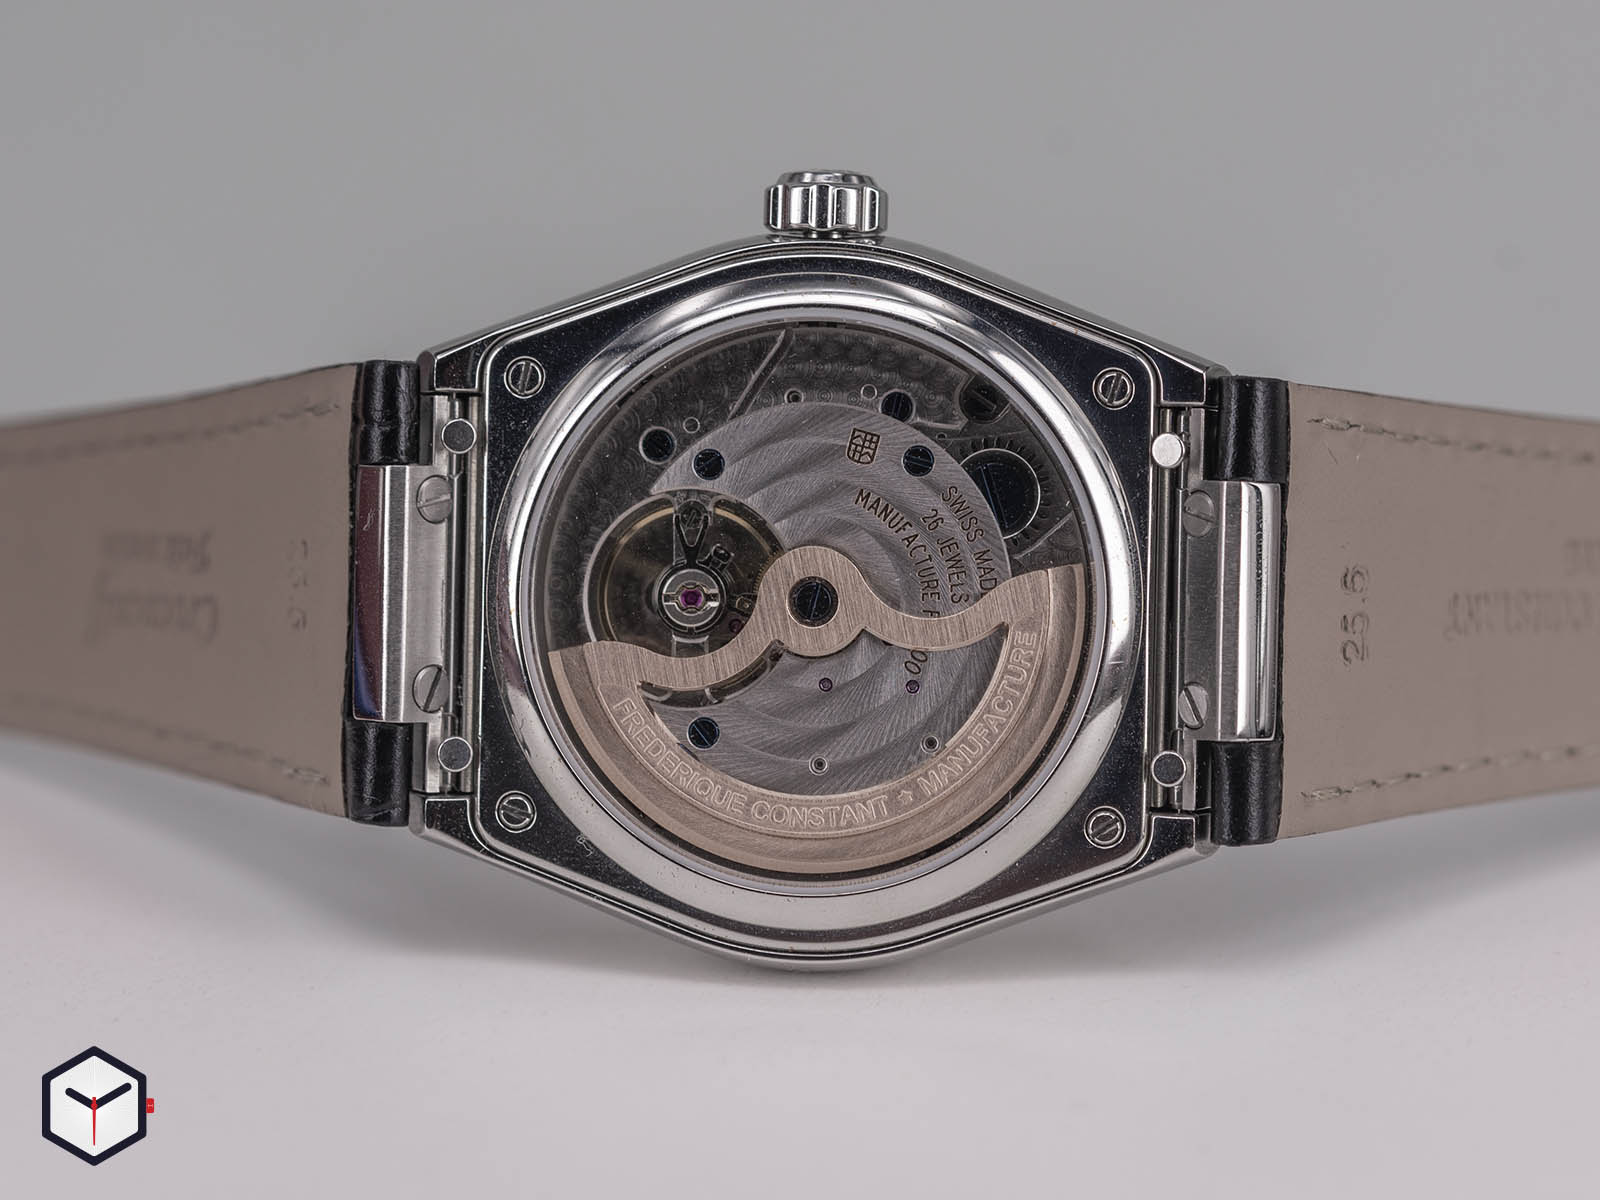 fc-775s4nh6-frederique-constant-highlife-perpetual-calendar-manufacture-6.jpg